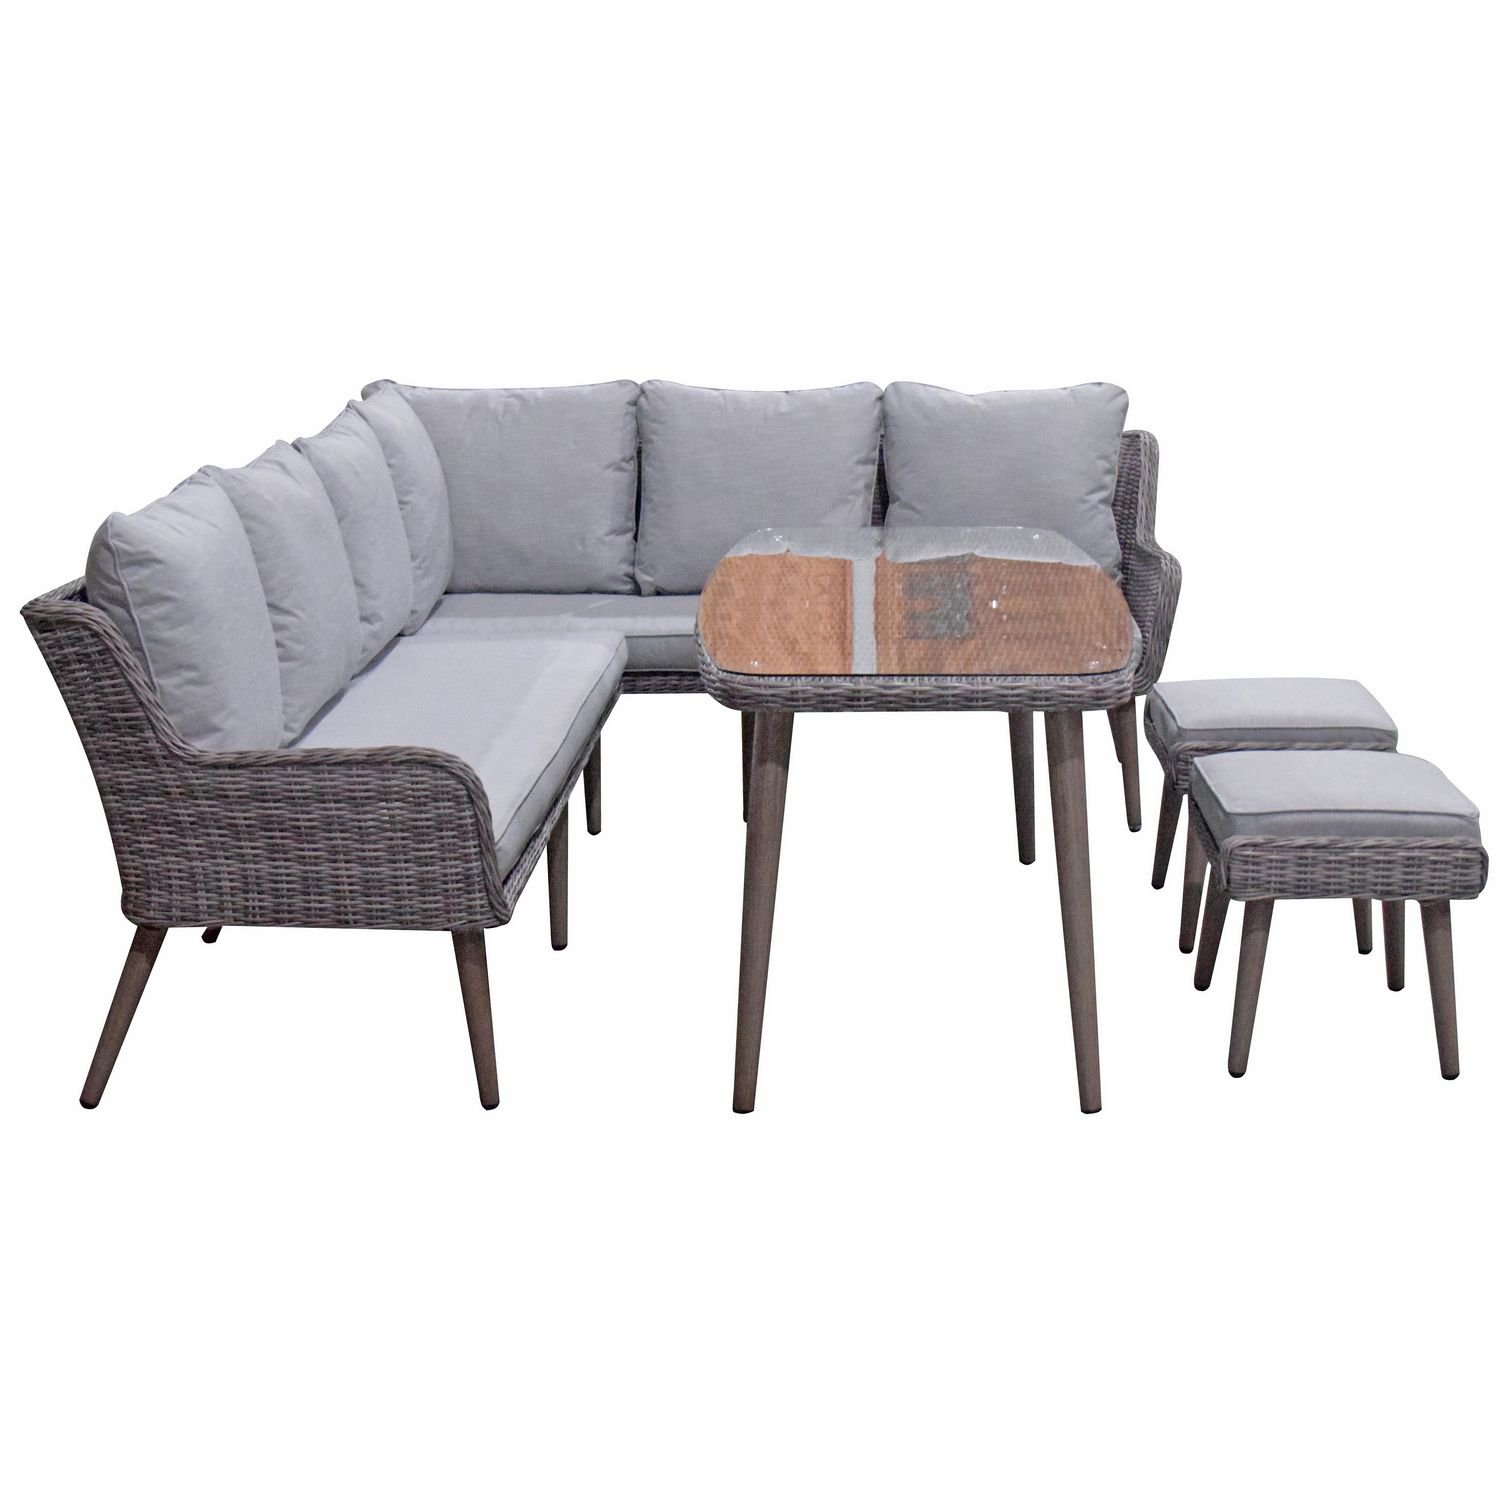 image-Signature Weave Garden Furniture Danielle Corner Dining Sofa Set with Ottomans